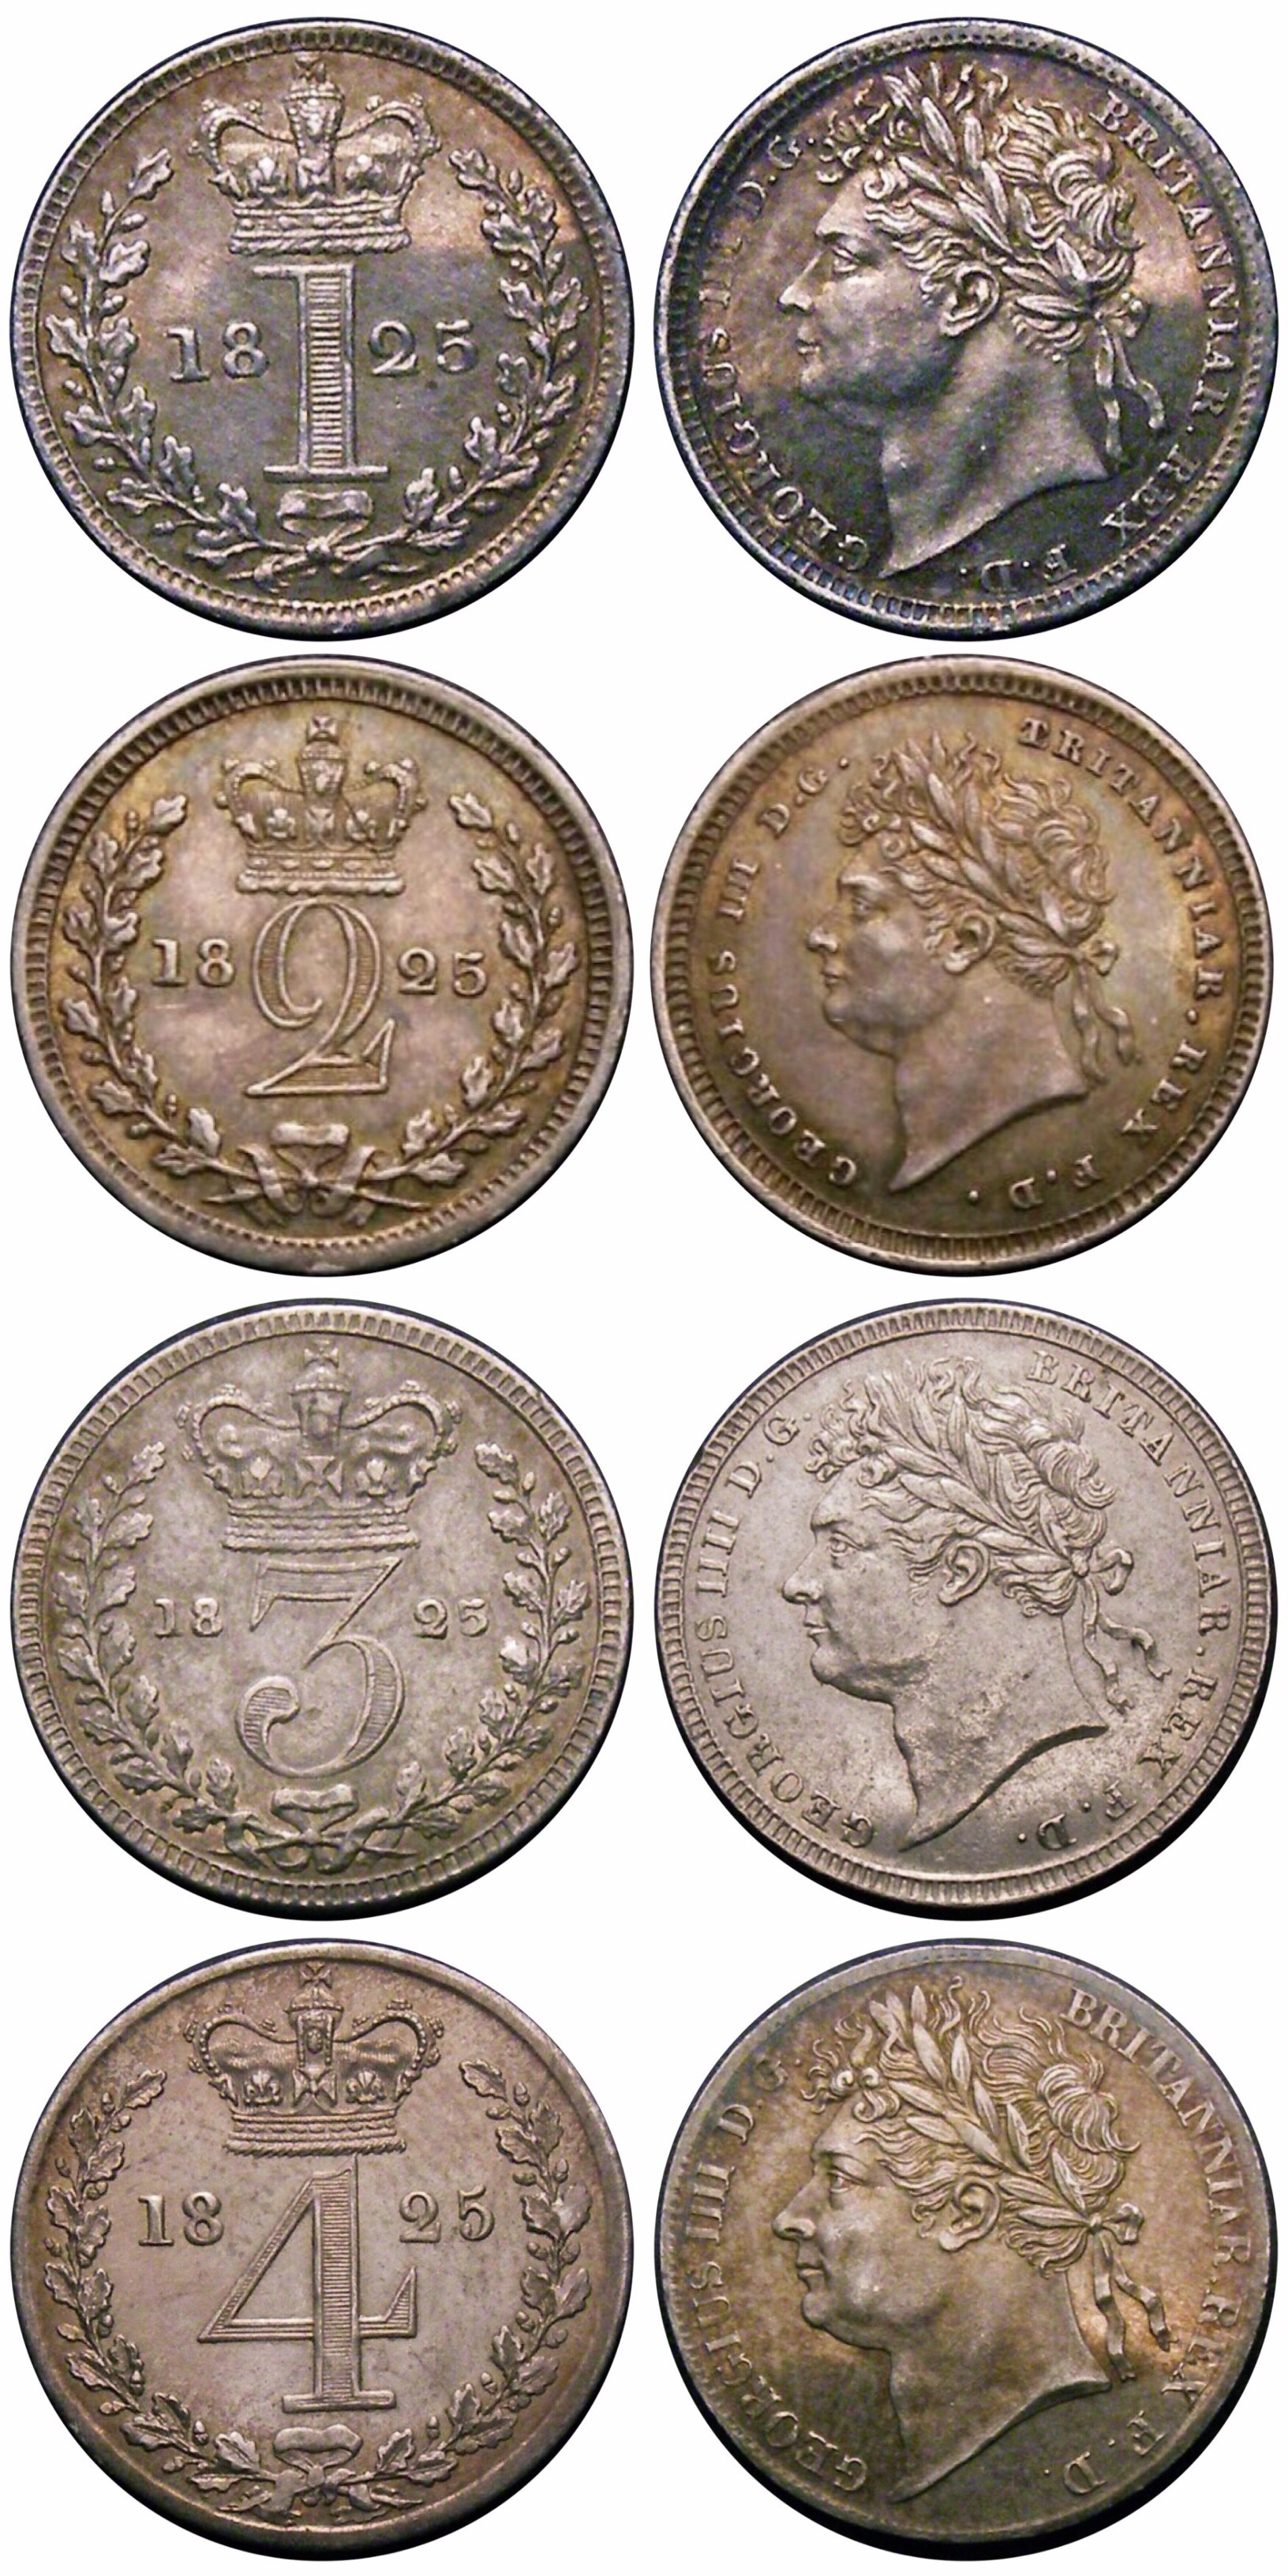 1825 Maundy set, CGS 80 70 55 70, nEF to Choice UNC, George IV, T over B on 2d